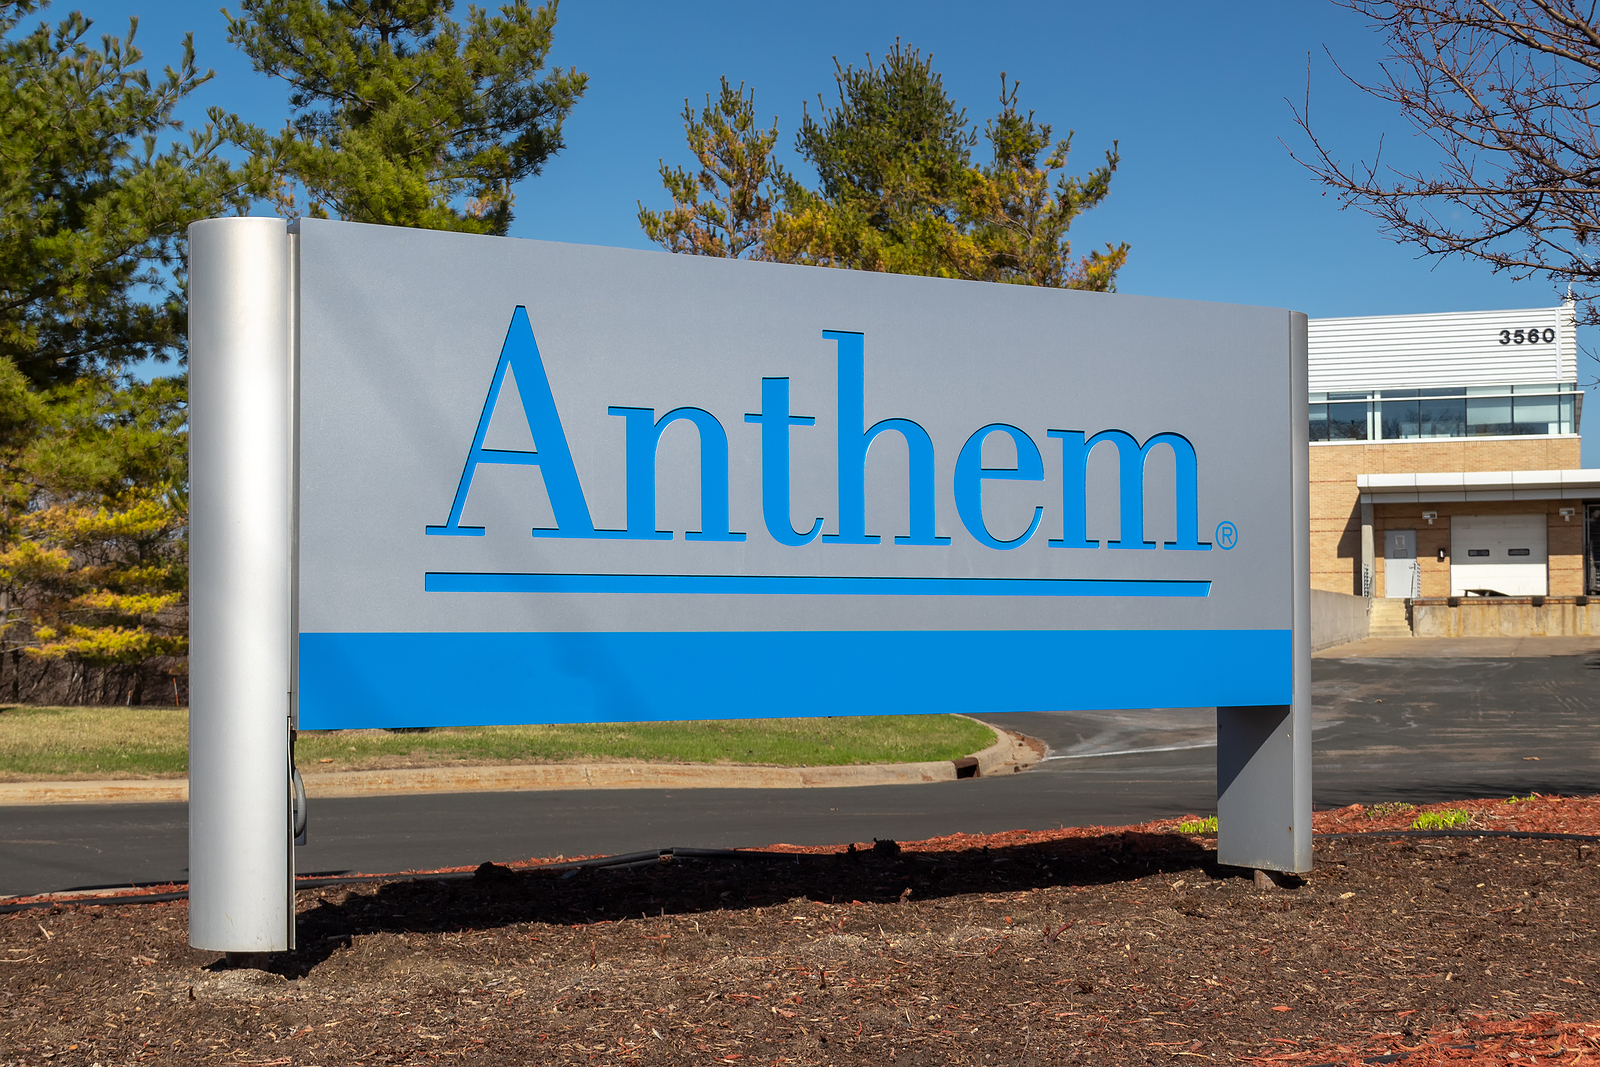 Anthem ANTM stock news and analysis